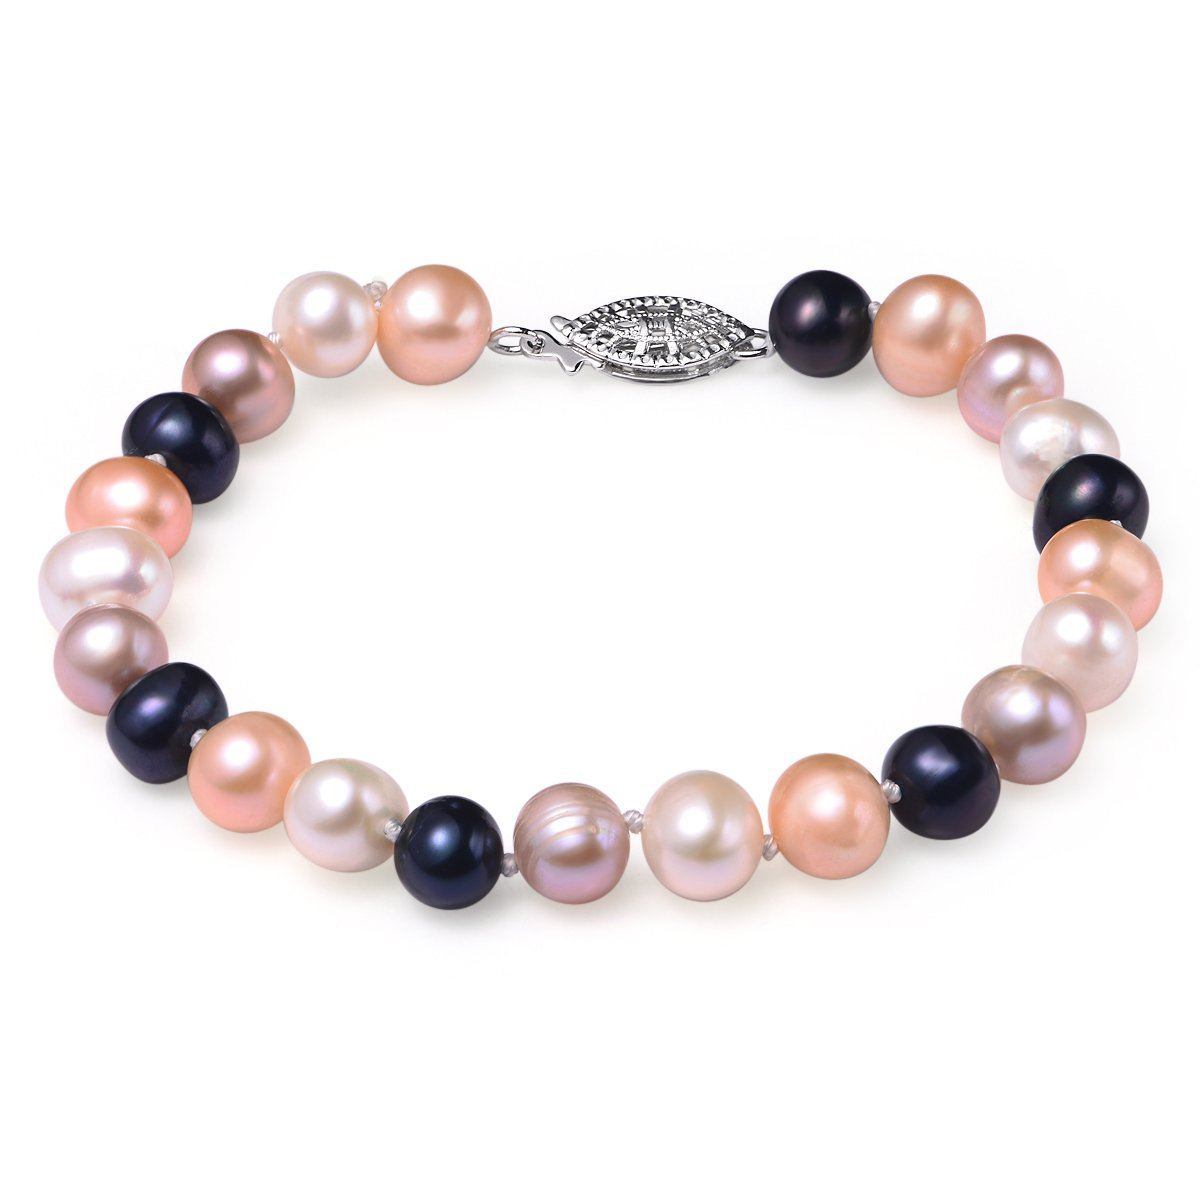 multi colored, 7-8mm aa, cultured freshwater pearl bracelet with 14k white gold filled fish hook